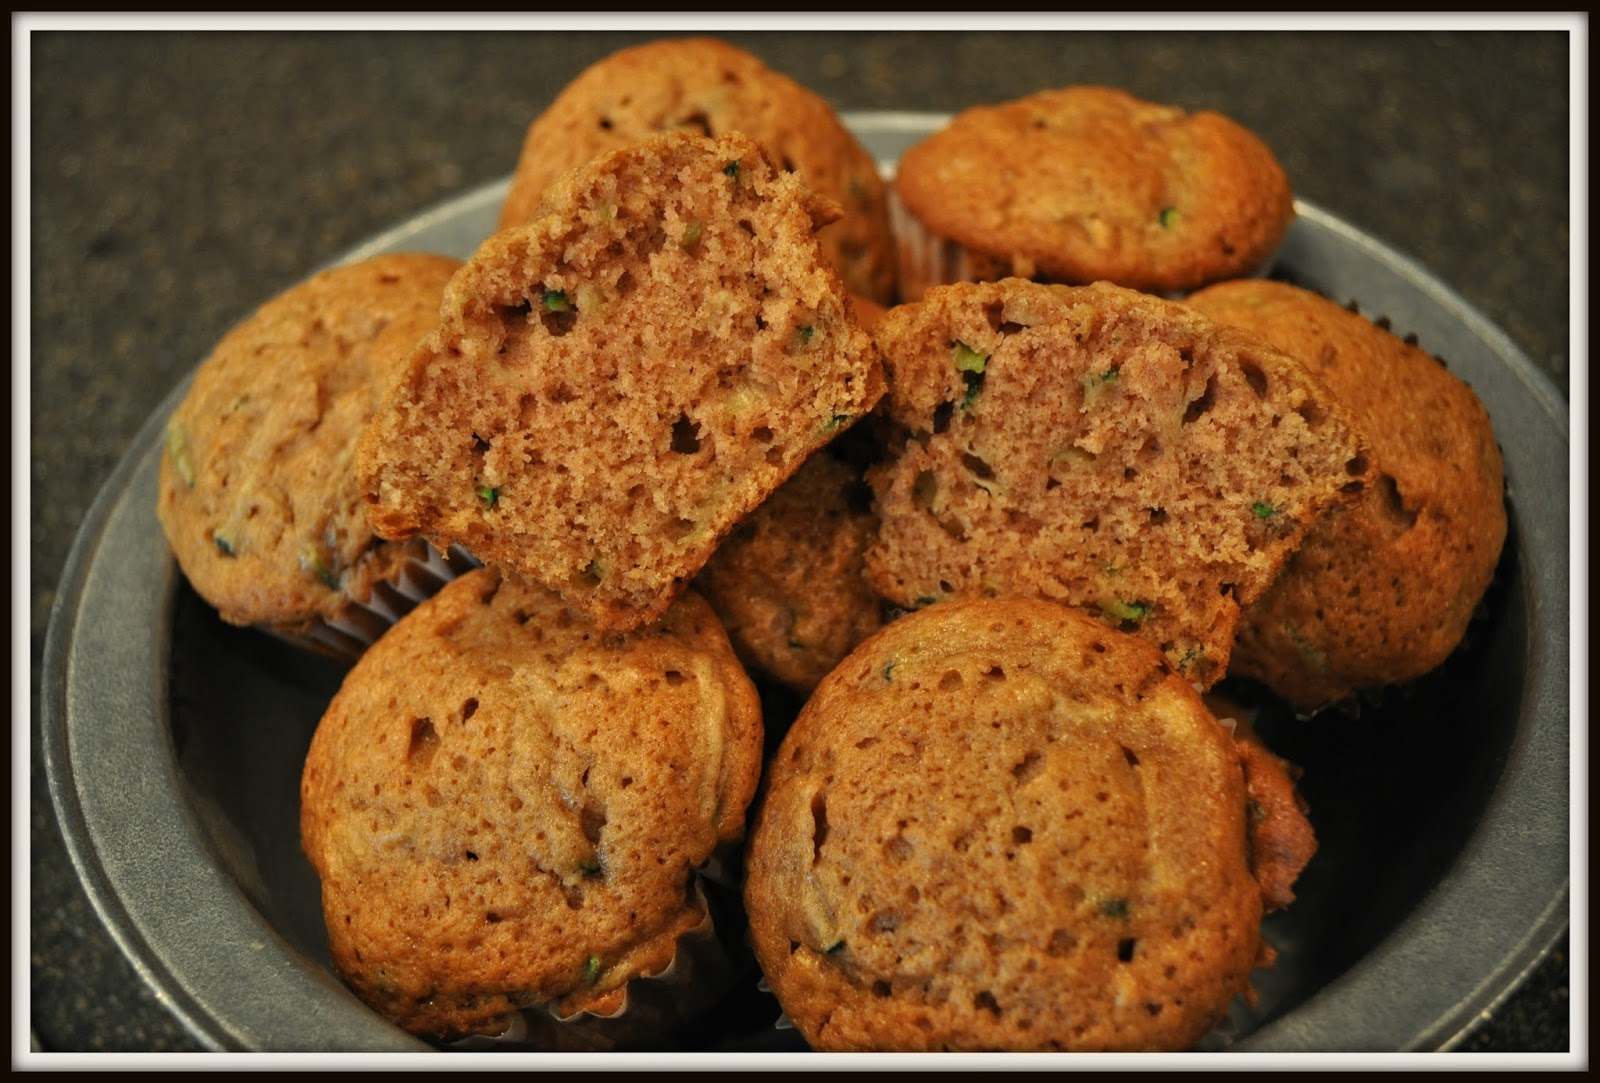 Grassy Branch Farm: Best Zucchini Muffins Ever!